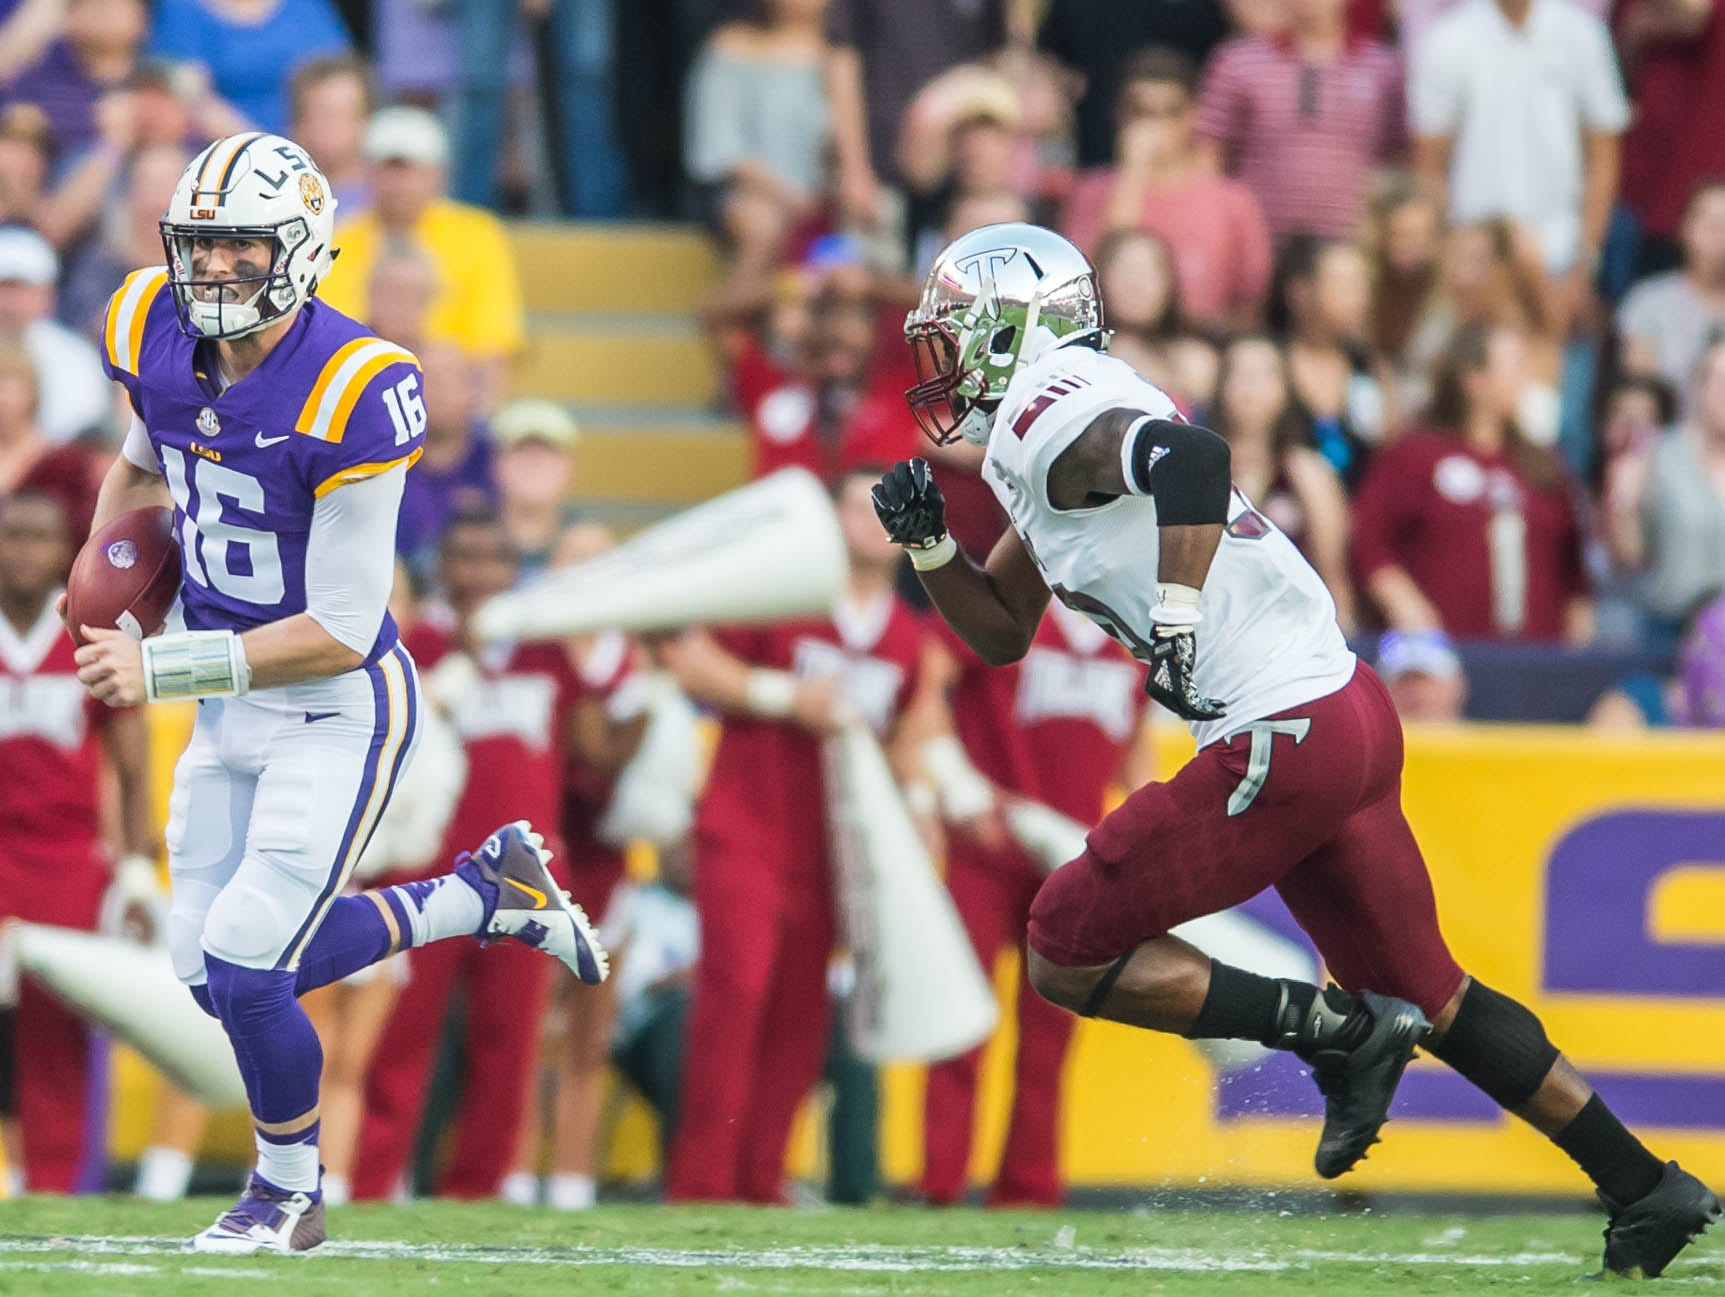 LSU Tigers quarterback Danny Etling (16) with the quarterback keeper and gets the first down as the LSU Tigers take on the Troy Trojans in a non-conference contest on Saturday Sept. 30, 2017.